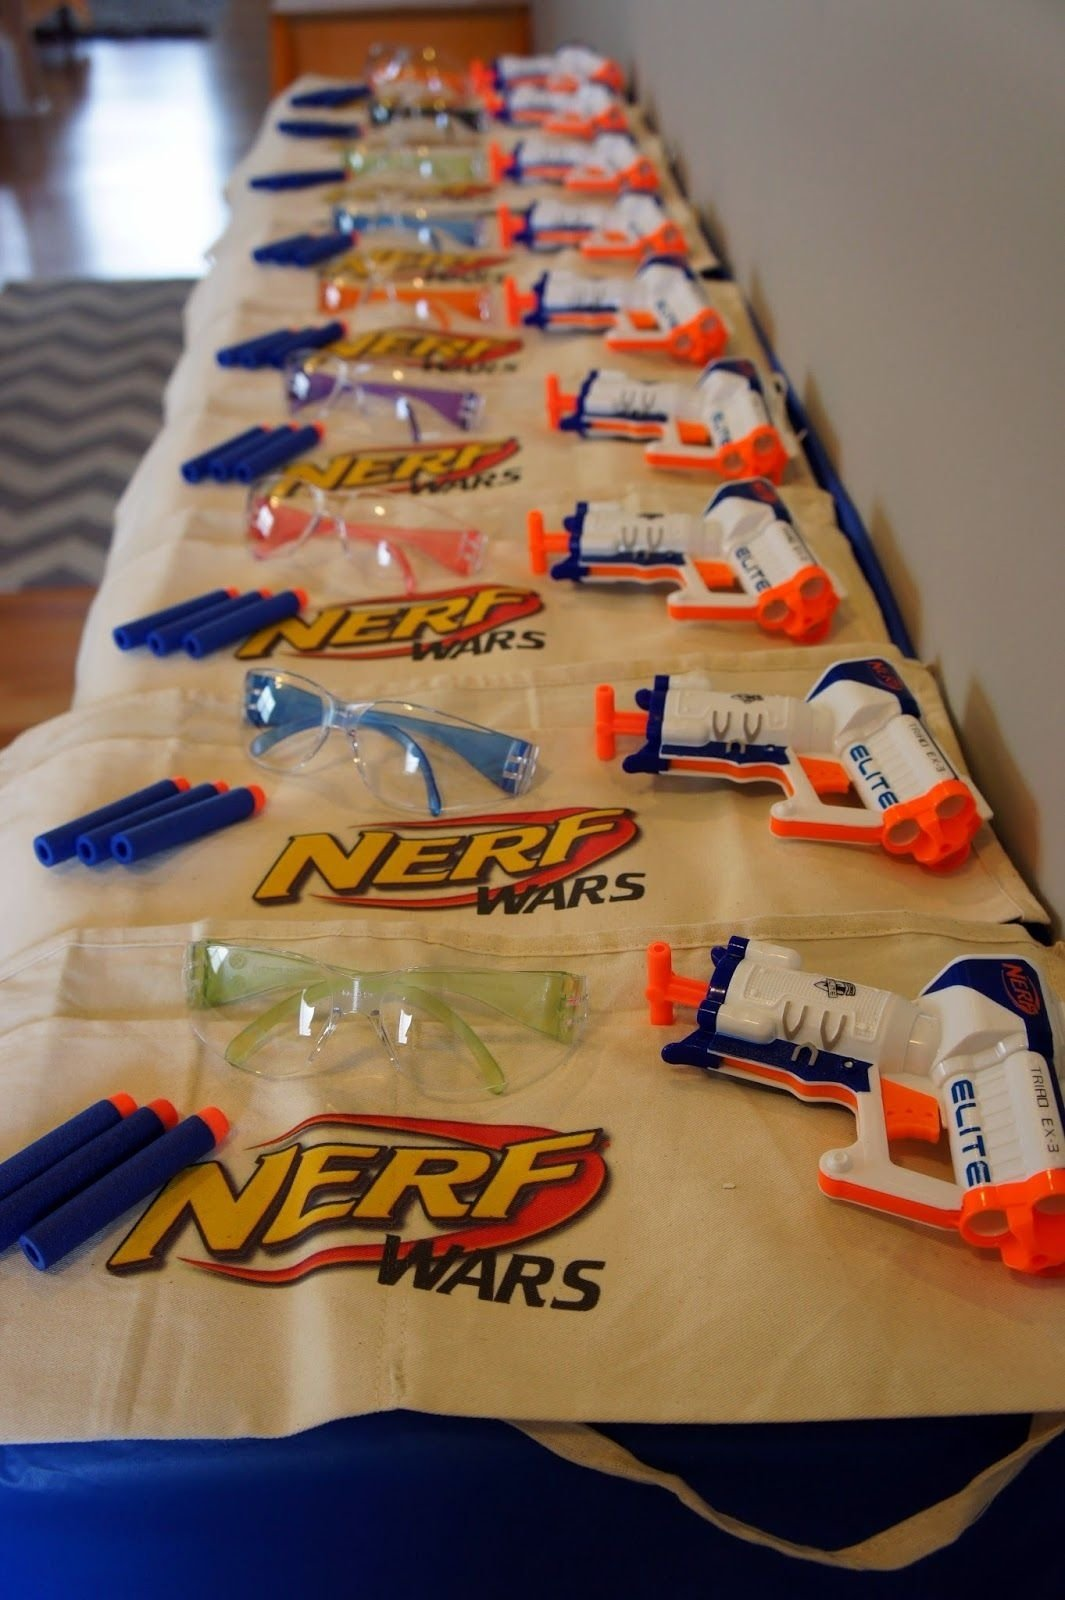 10 Most Popular Boys 8Th Birthday Party Ideas scribners scribblers ryans 8th birthday nerf gun party birthday 2 2020